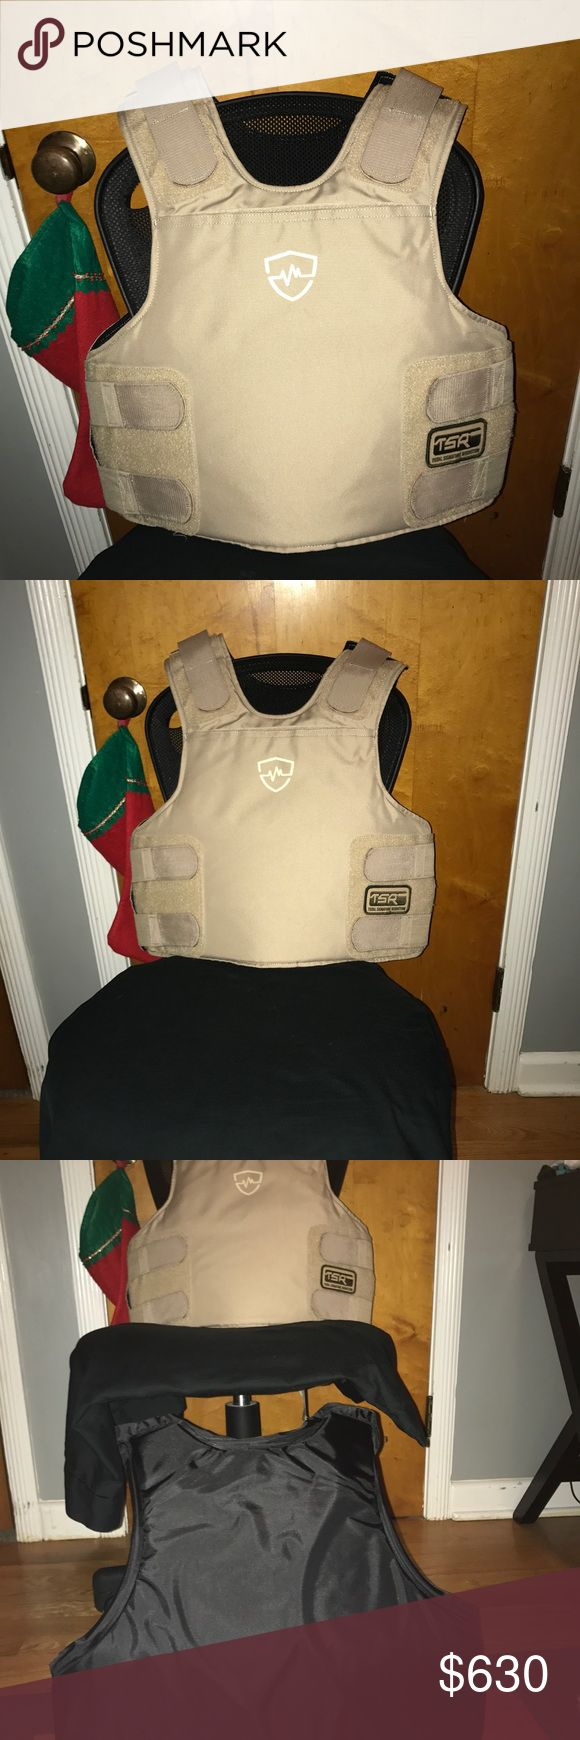 Concealable Multi-Threat Vest NIJ .06 Level iiia Nij Level iiia Protection Safe Life Defense armor reliably defends against: all common handgun rounds including .357, 9mm, 45acp, all the way up to .44 magnum. Level iiia protection even protects the wearer from shotgun rounds including 00 buckshot, 12 ga slugs and even submachine gun rounds. In conjunction with our level 4 rifle plate our armor protects against rifle threats all the way up to .30-06. Other